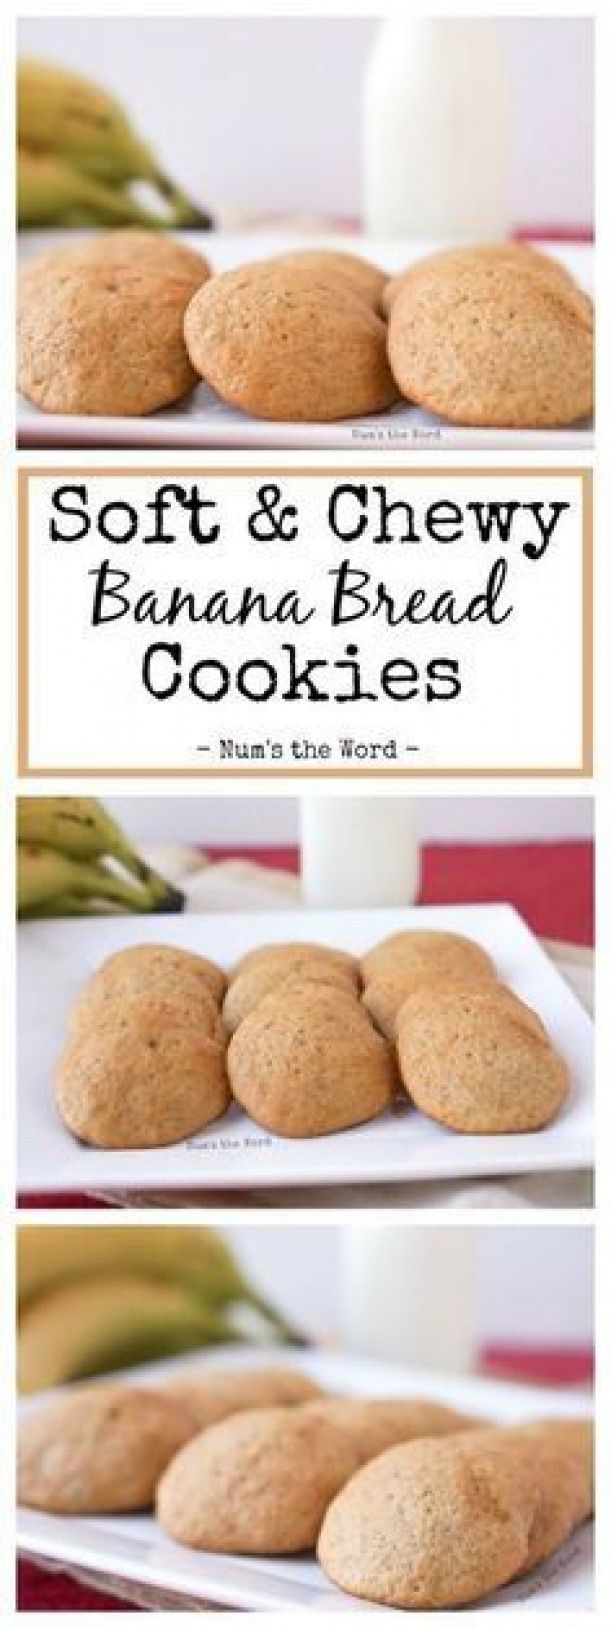 Soft & Chewy Banana Cookies are the perfect Breakfast Snack or Dessert!  Its my favorite Banana Bread Recipe turned into a cookie!  Yum! The